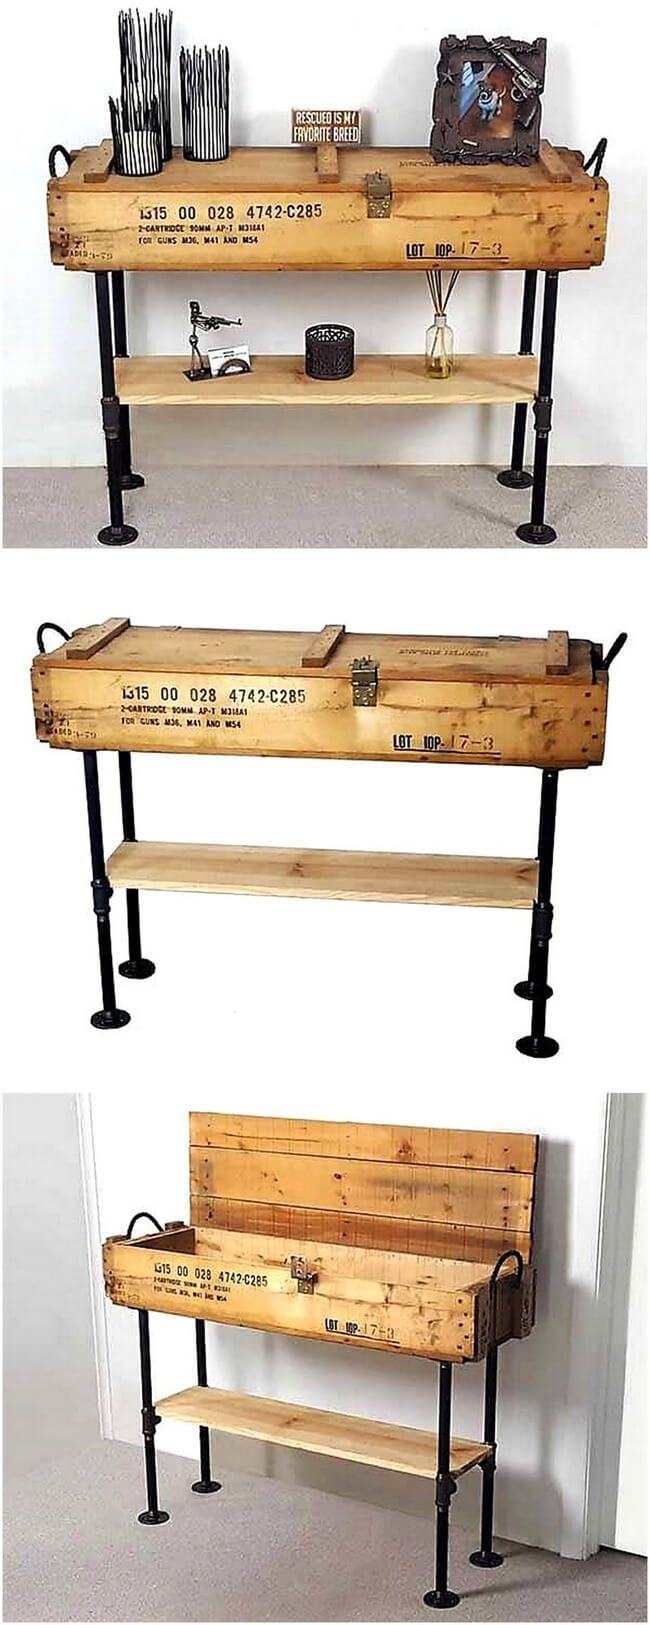 Look at this remarkable and incredible pallet wood entryway table. This pallet wood table lends your interior an awesome piece of vintage art. These black iron pipe legs are complementing the rustic look of wood and enhancing the image. The table top serves as a storage box which adds to its utility.